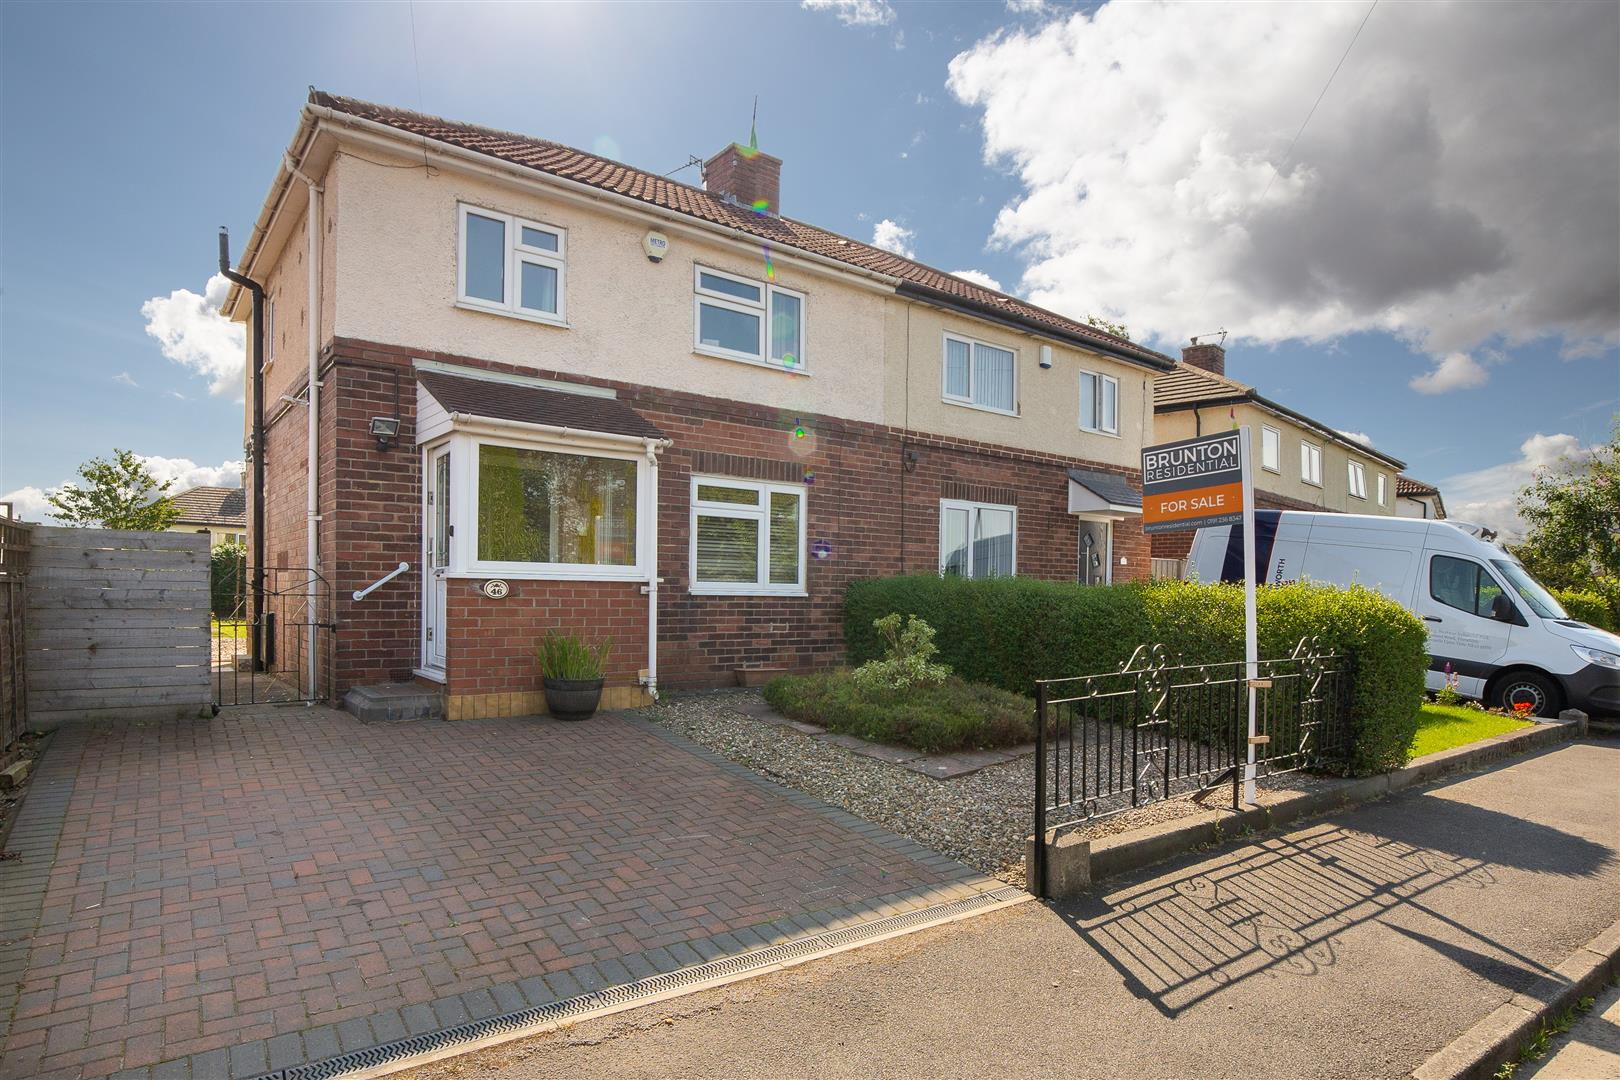 3 bed semi-detached house for sale in Newcastle Upon Tyne, NE15 9HL  - Property Image 1